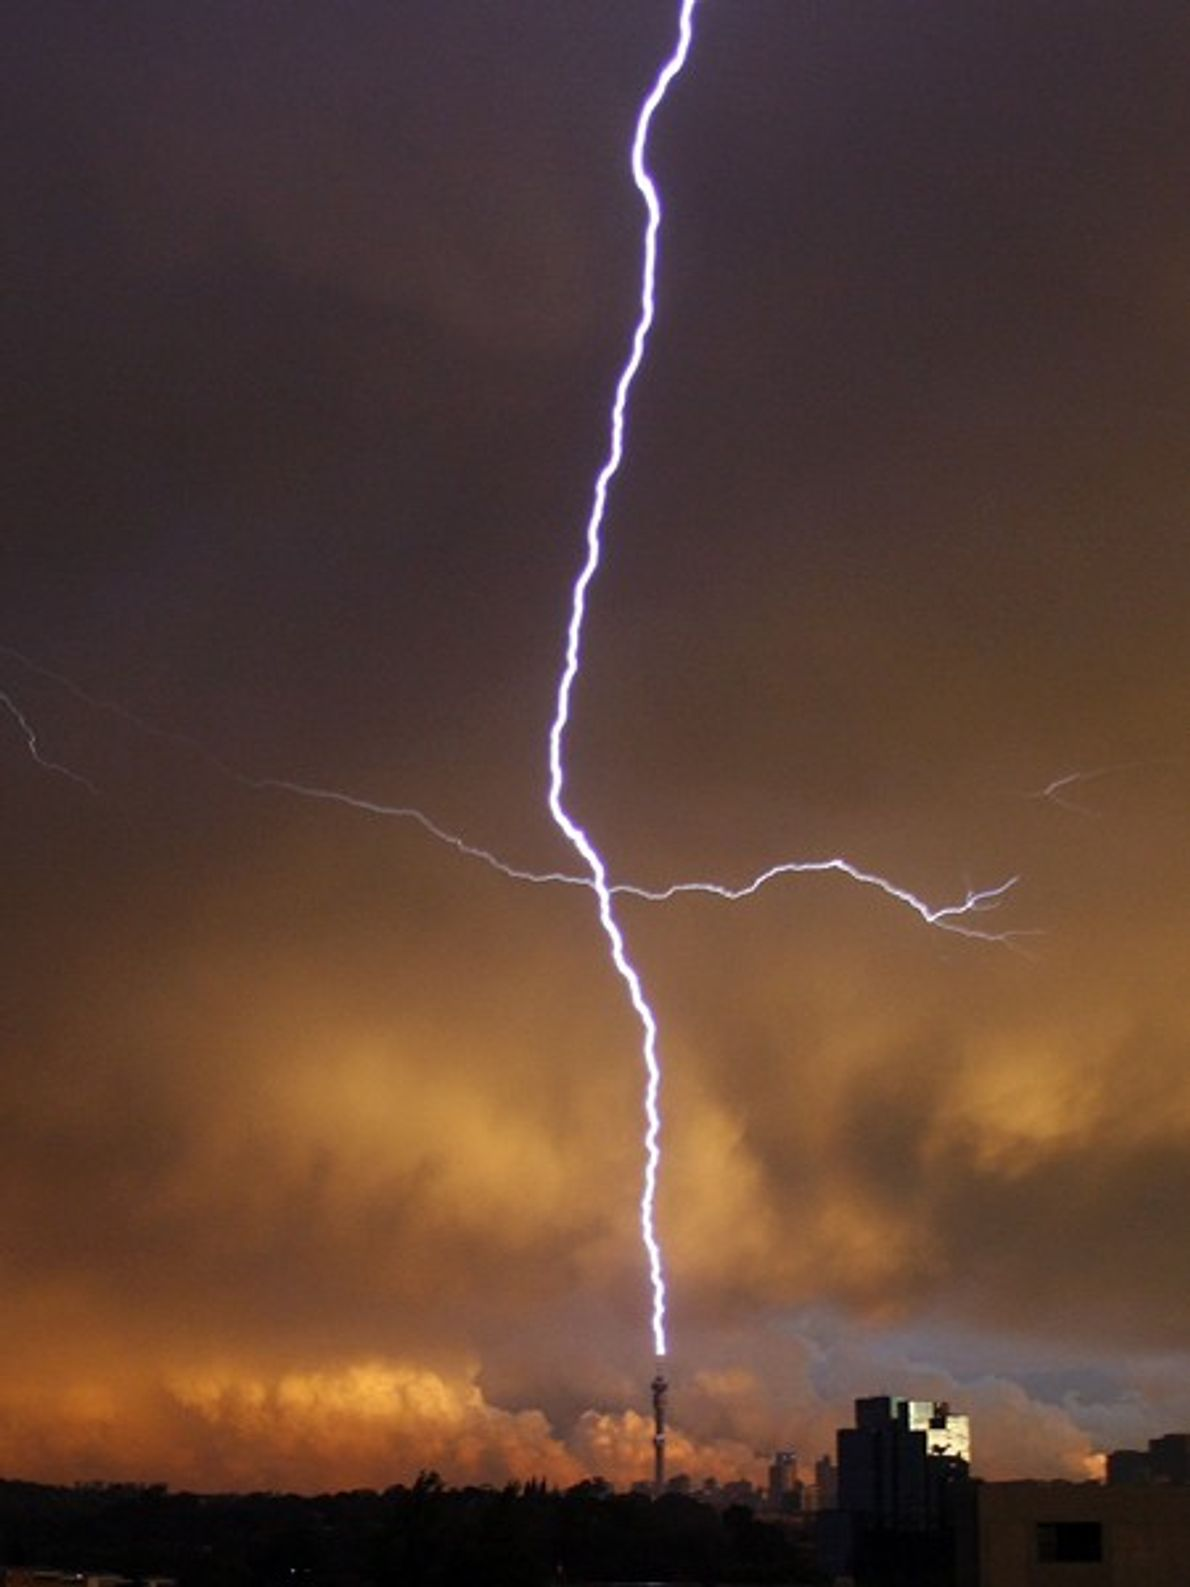 Tall towers are frequent targets of lightning strikes, because there is less air to act as ...